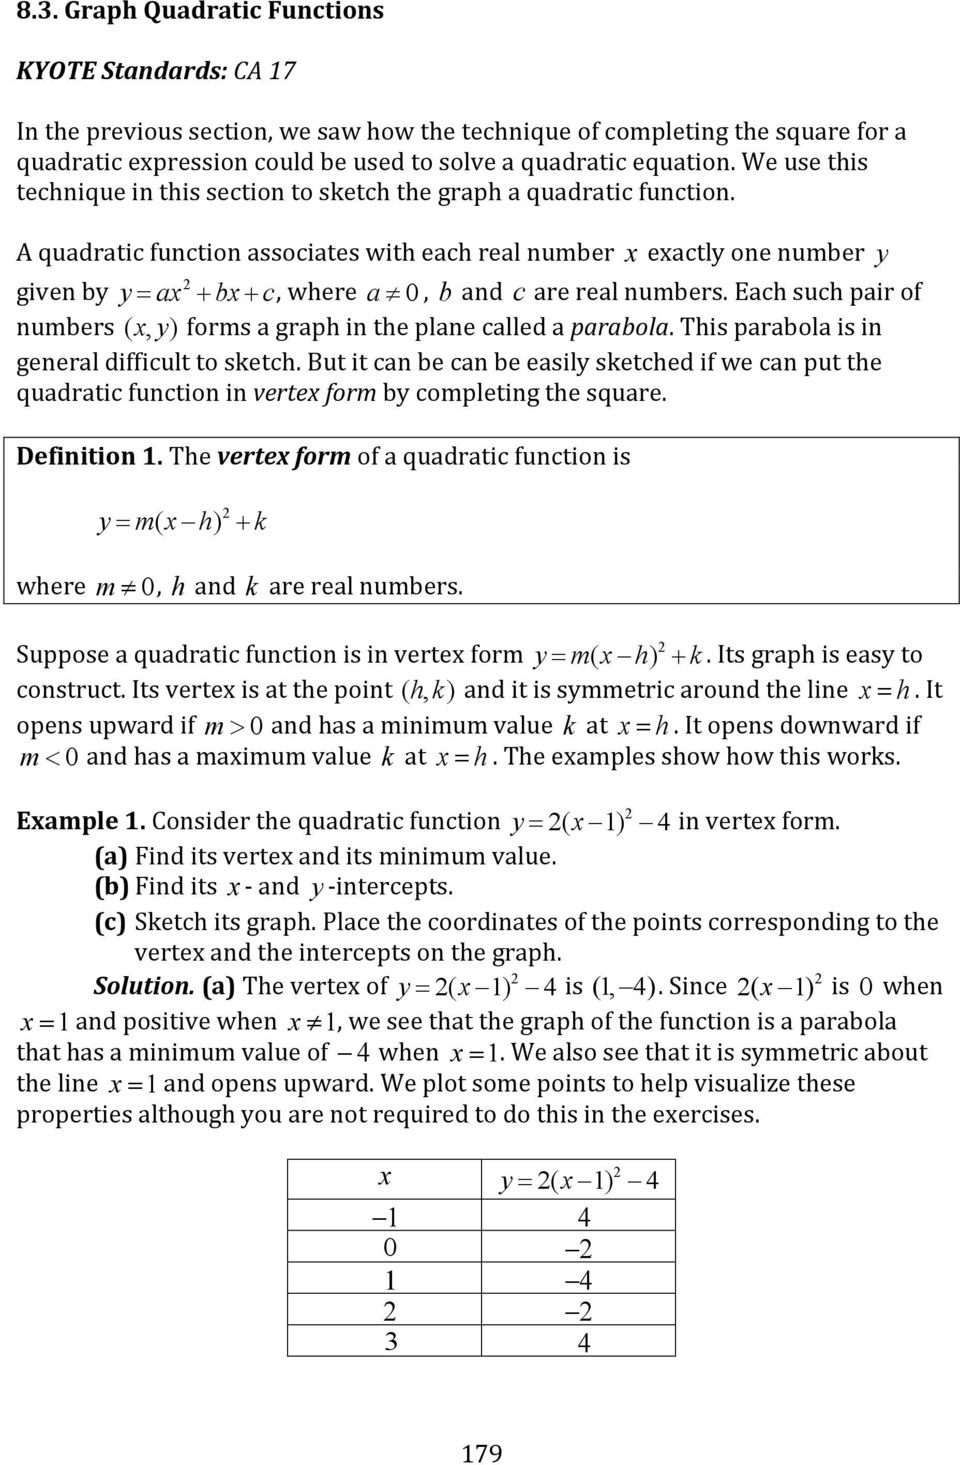 Chapter 8 Quadratic Equations And Functions Pdf